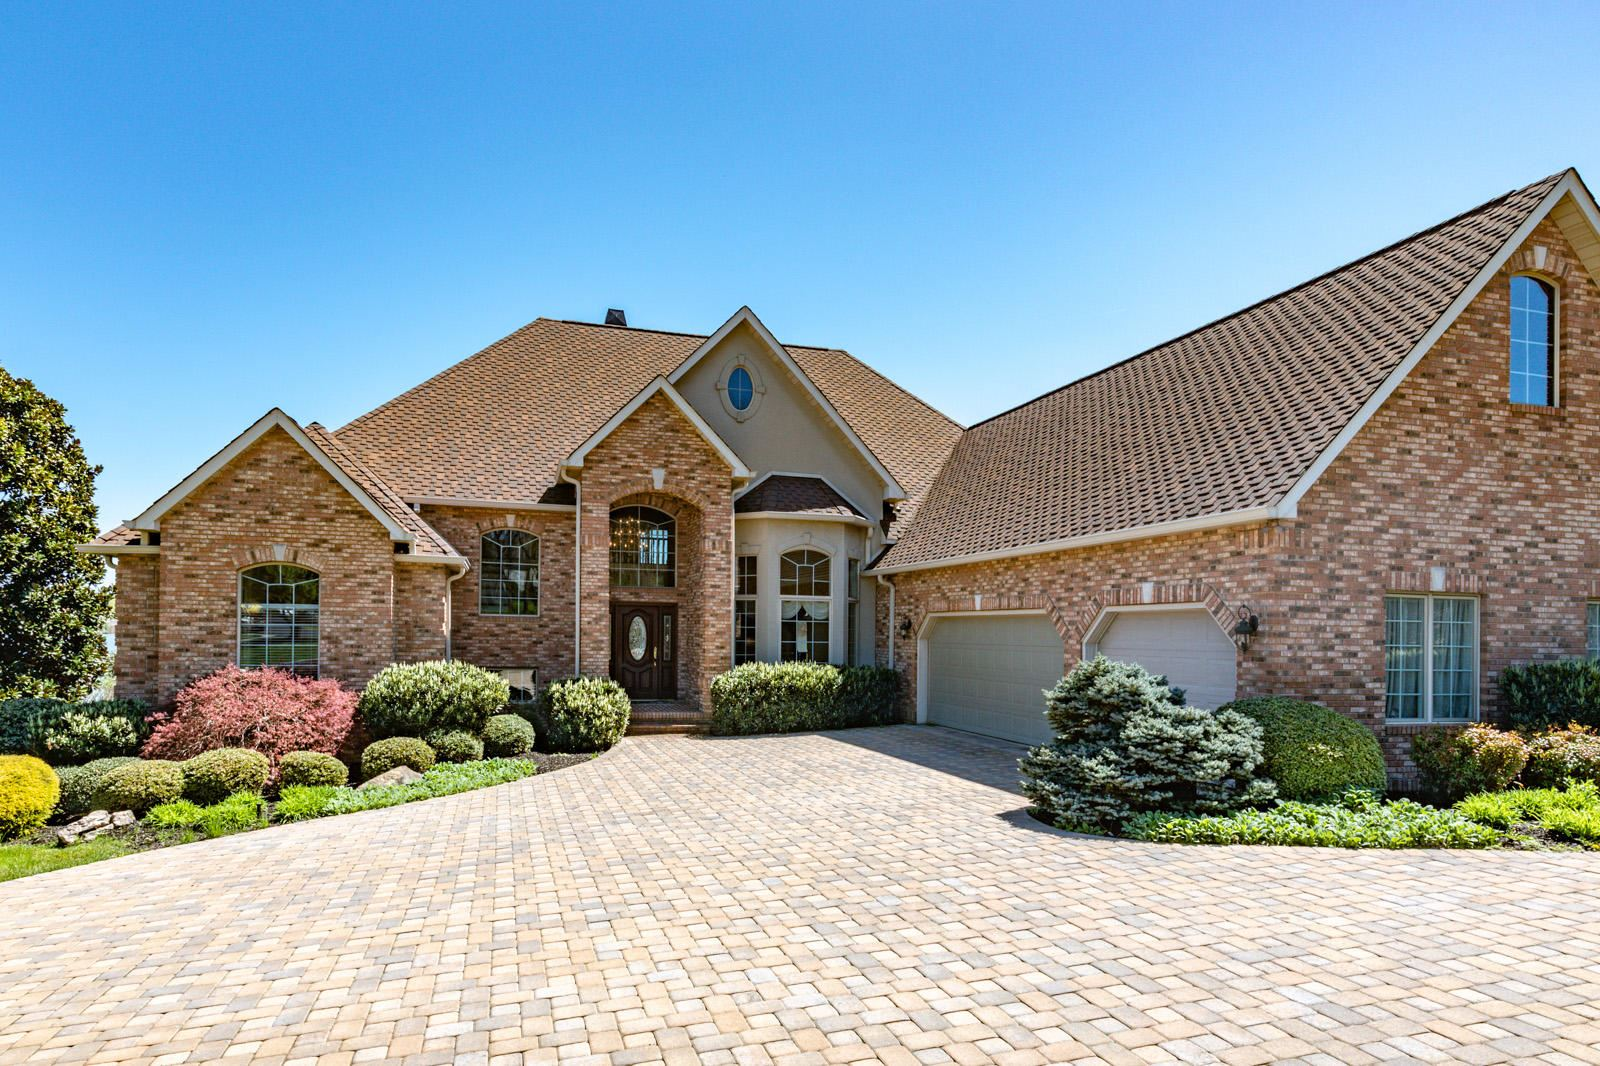 Photo for 200 Coyatee Cove, Loudon, TN 37774 (MLS # 1147466)